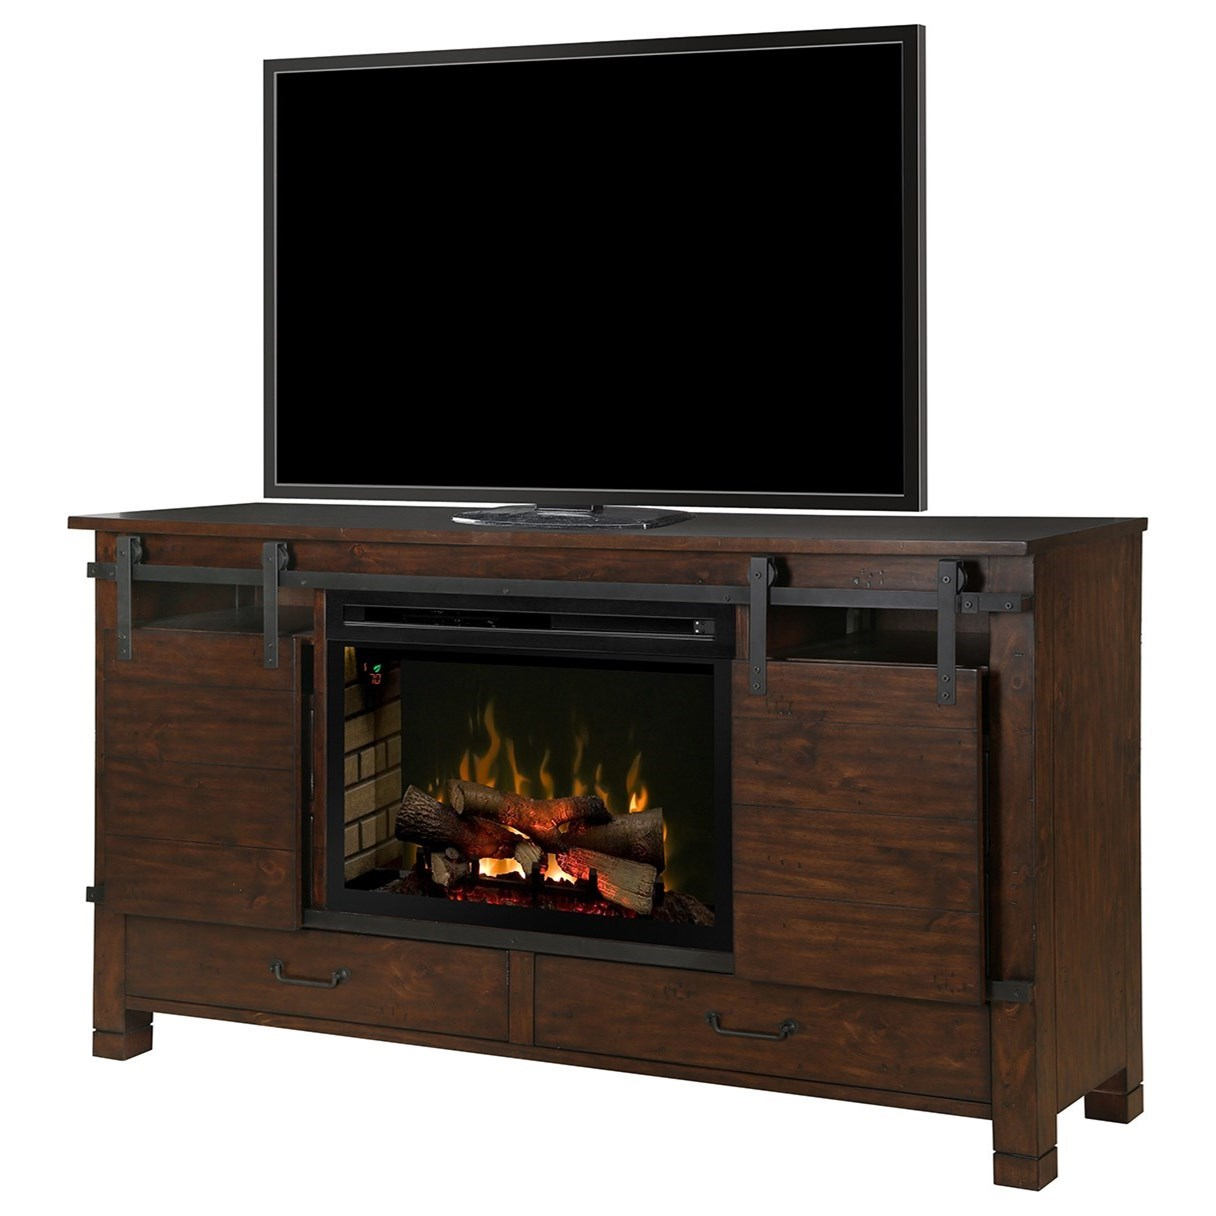 Dimplex Media Console Fireplaces Gds33ld 1670hb Austin Media Mantel Fireplace Becker Furniture